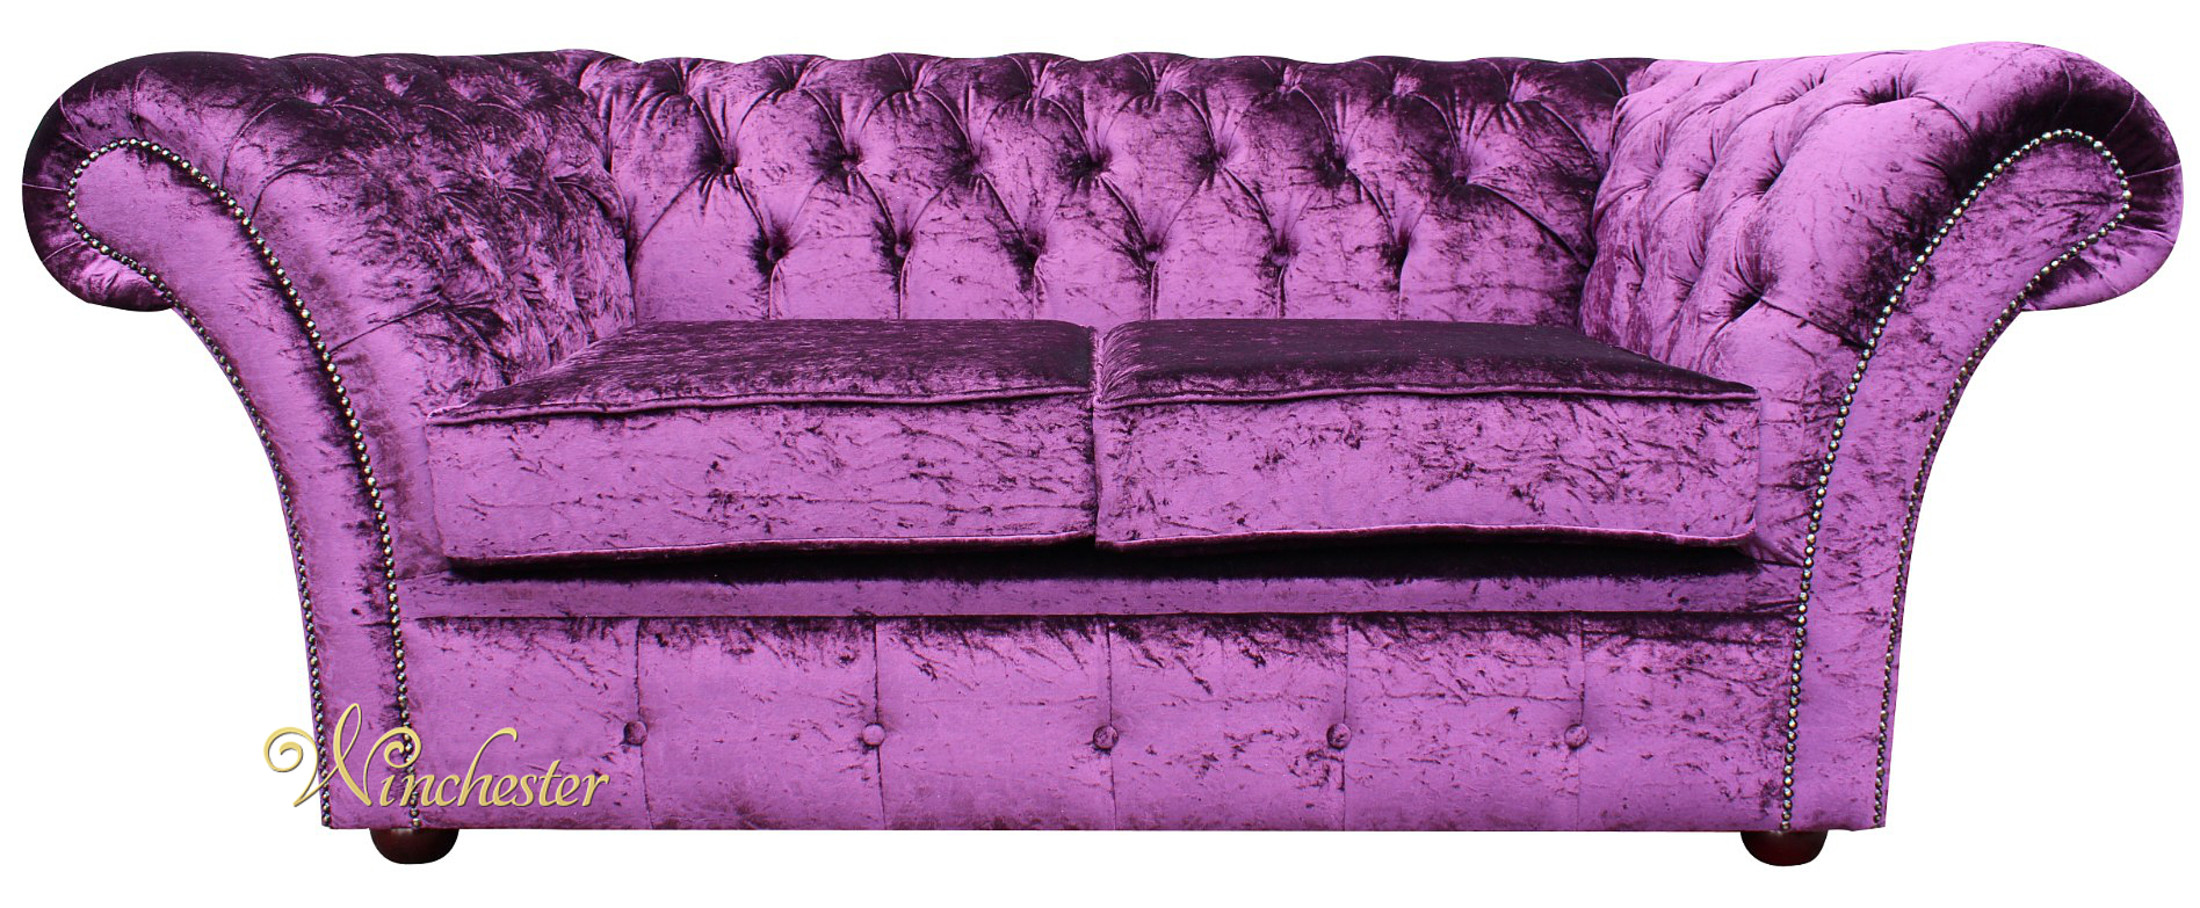 ... Chesterfield Balmoral 2 Seater Sofa Settee Boutique Purple